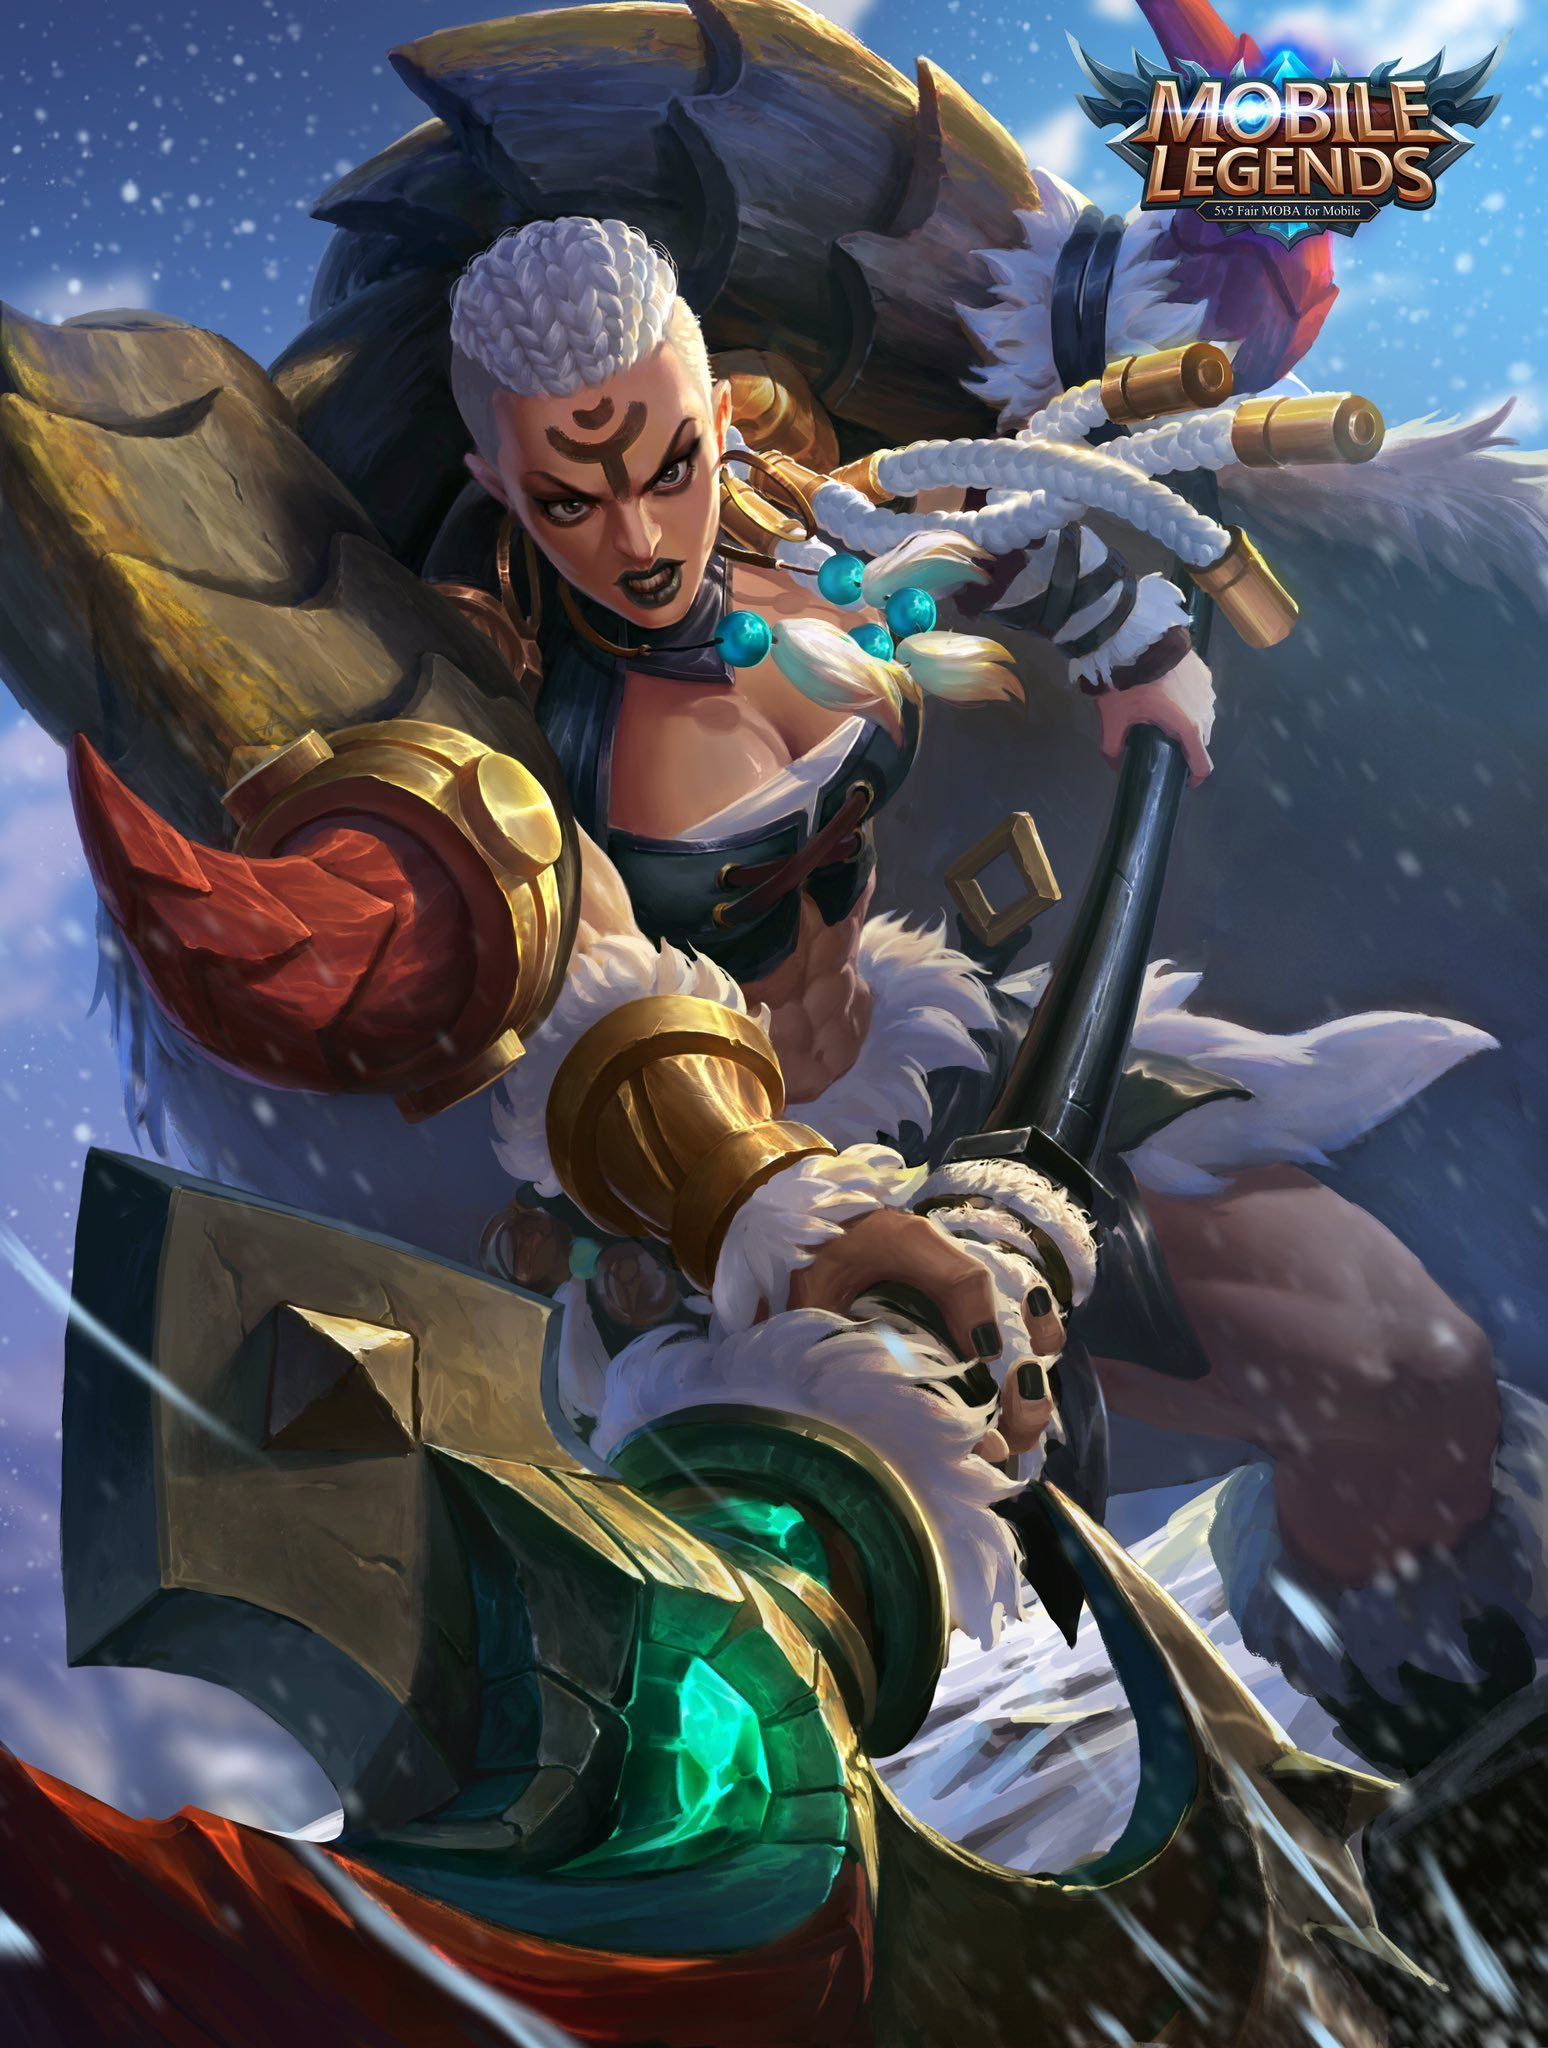 Wallpaper Mobile Legends Power Of Wildness